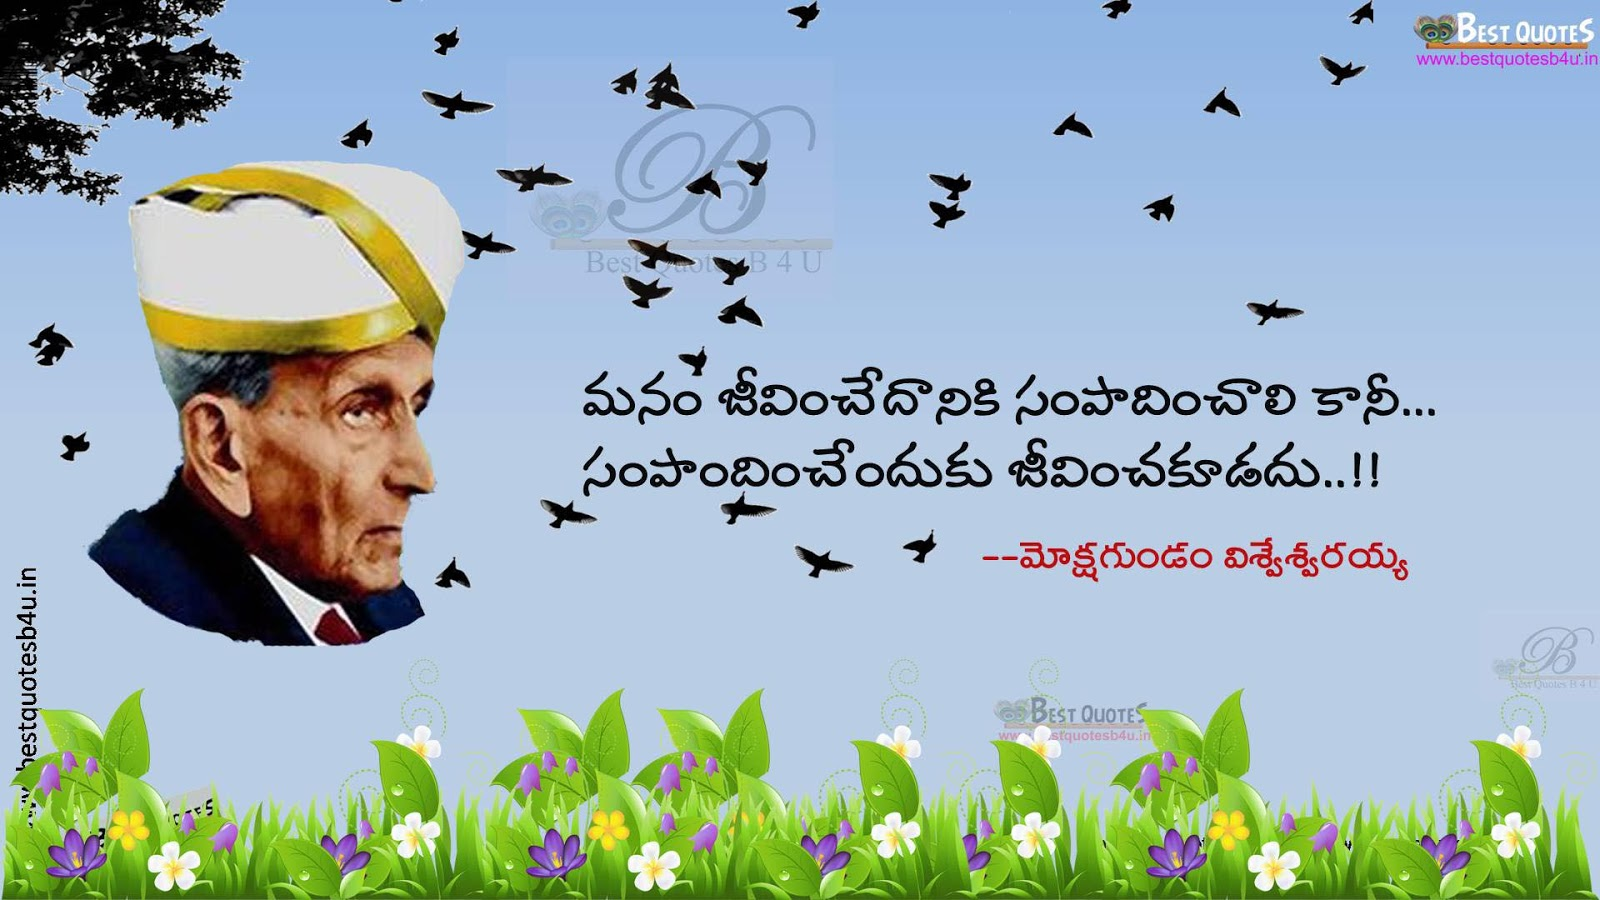 New Good Quotes About Life In Telugu Best Life Quotes In Hd Images